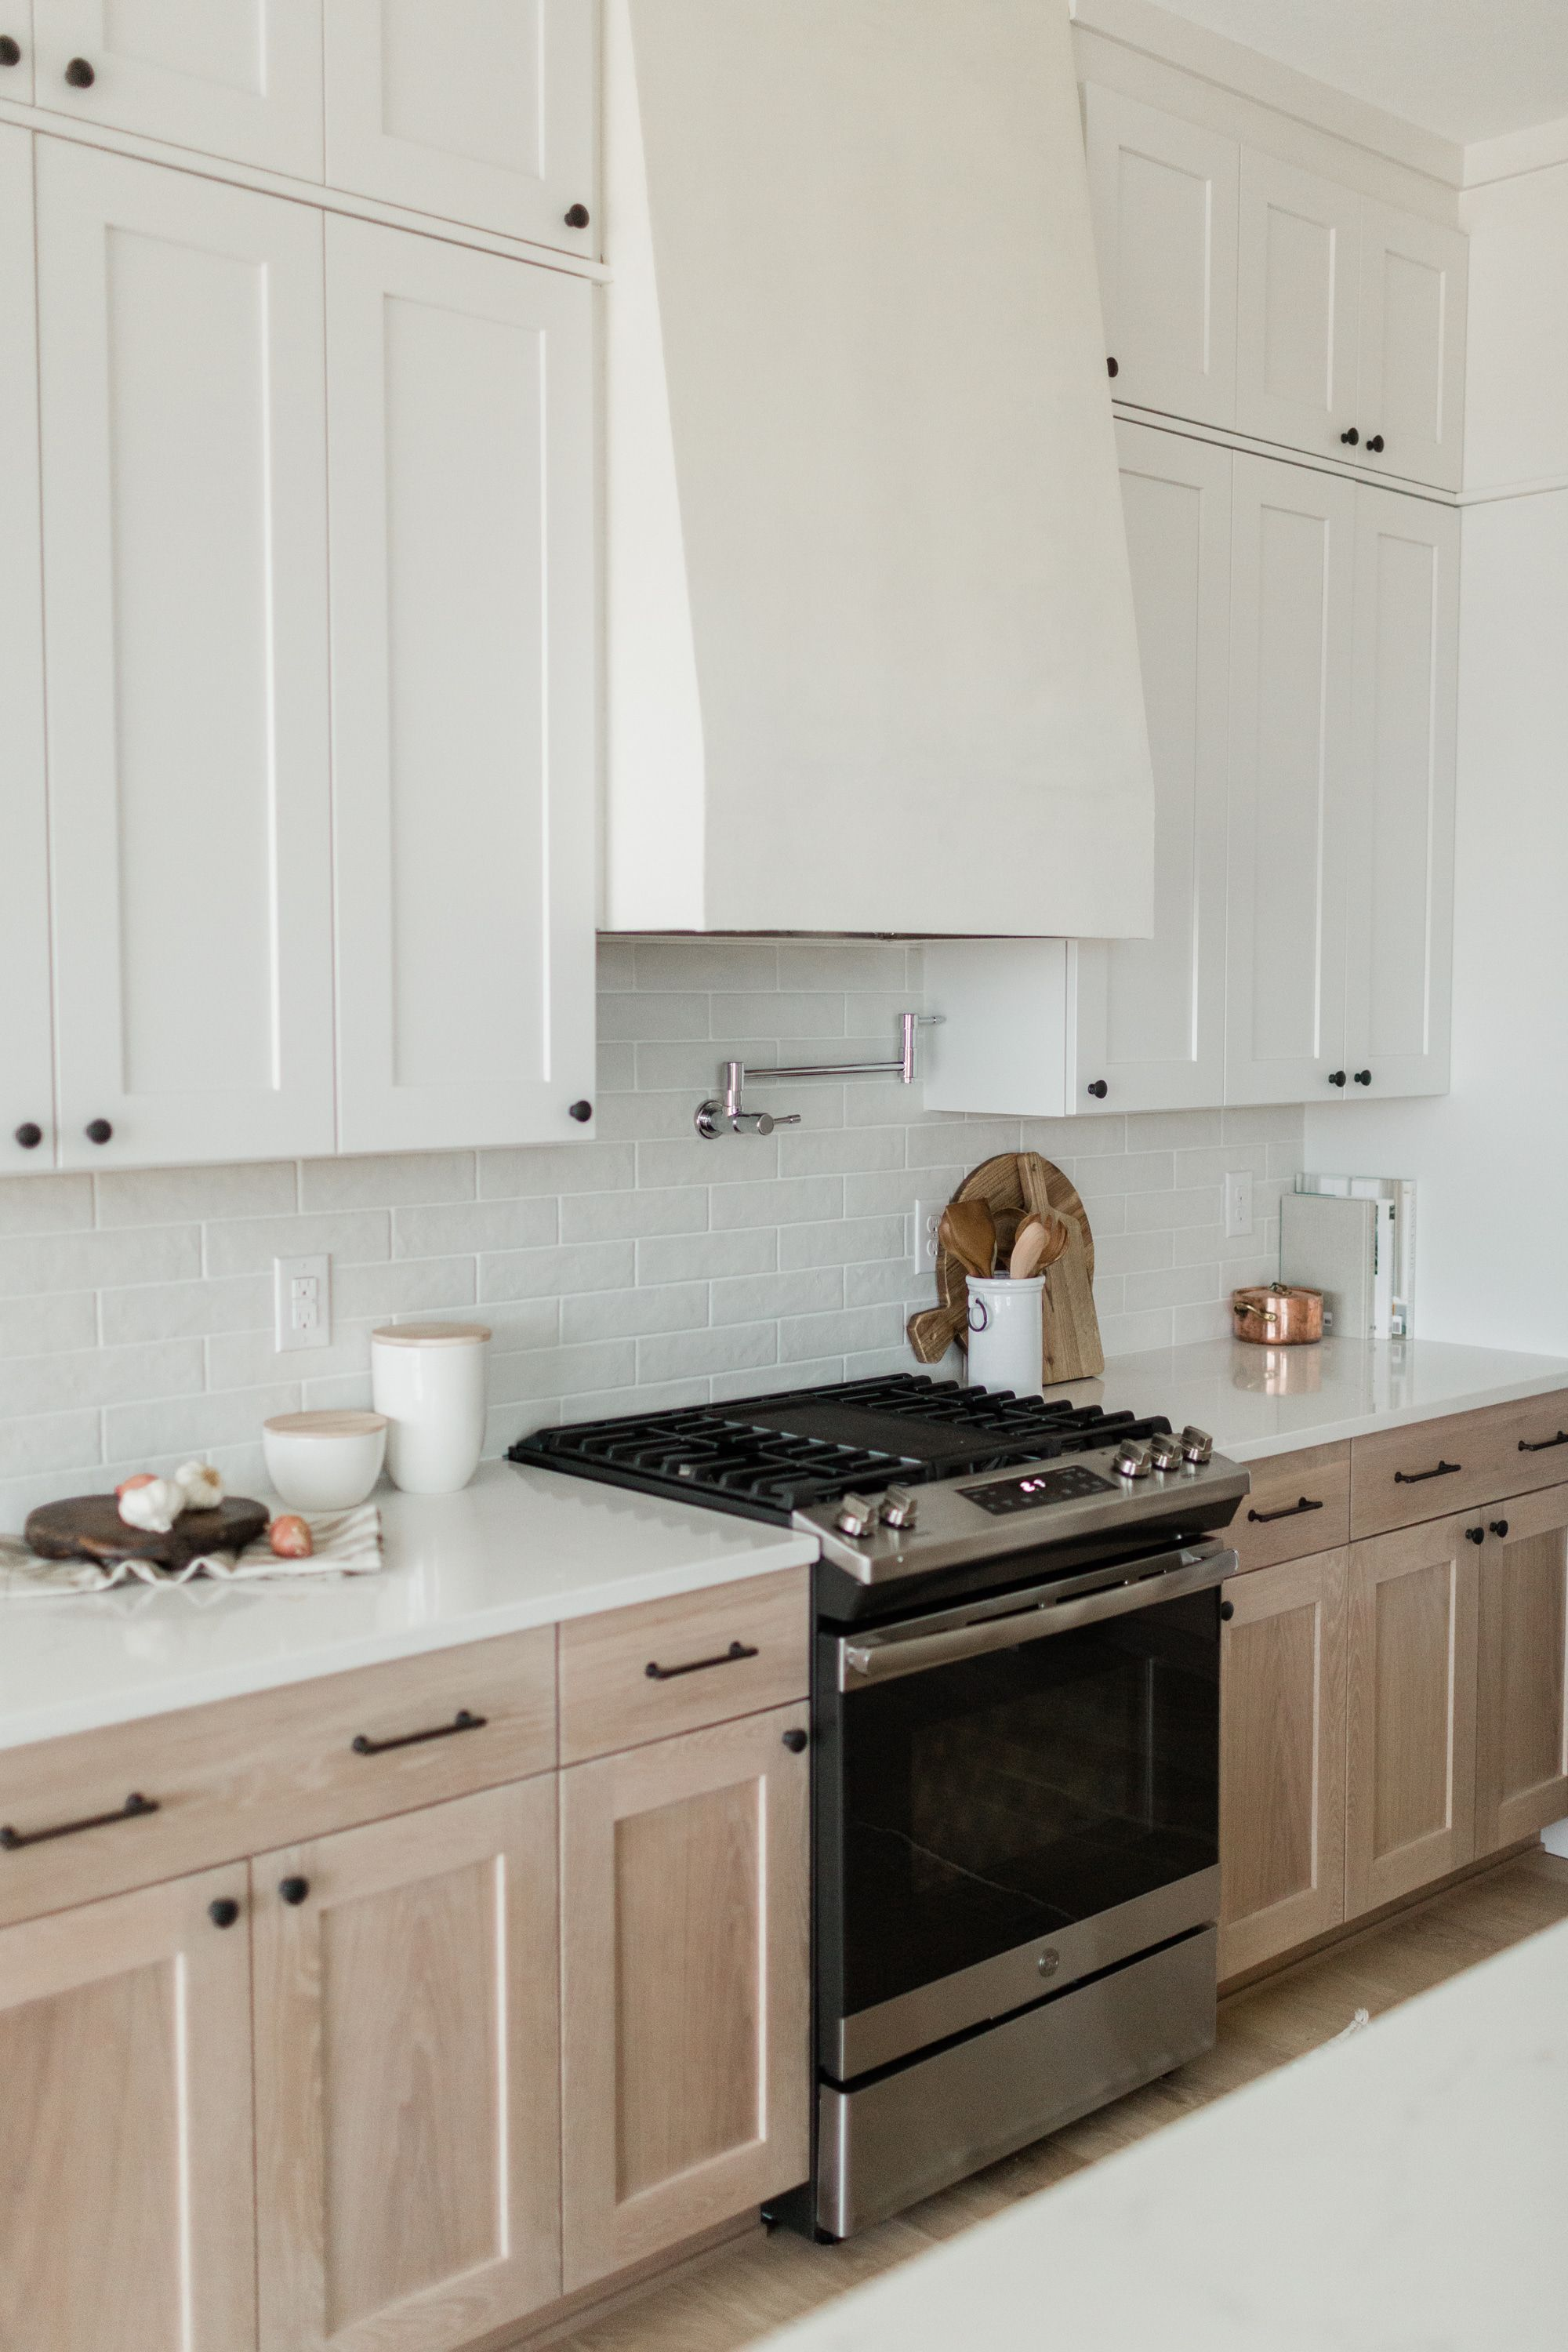 two toned kitchen cabinets in 2020 kitchen design kitchen kitchen cabinets on kitchen cabinets design id=73639